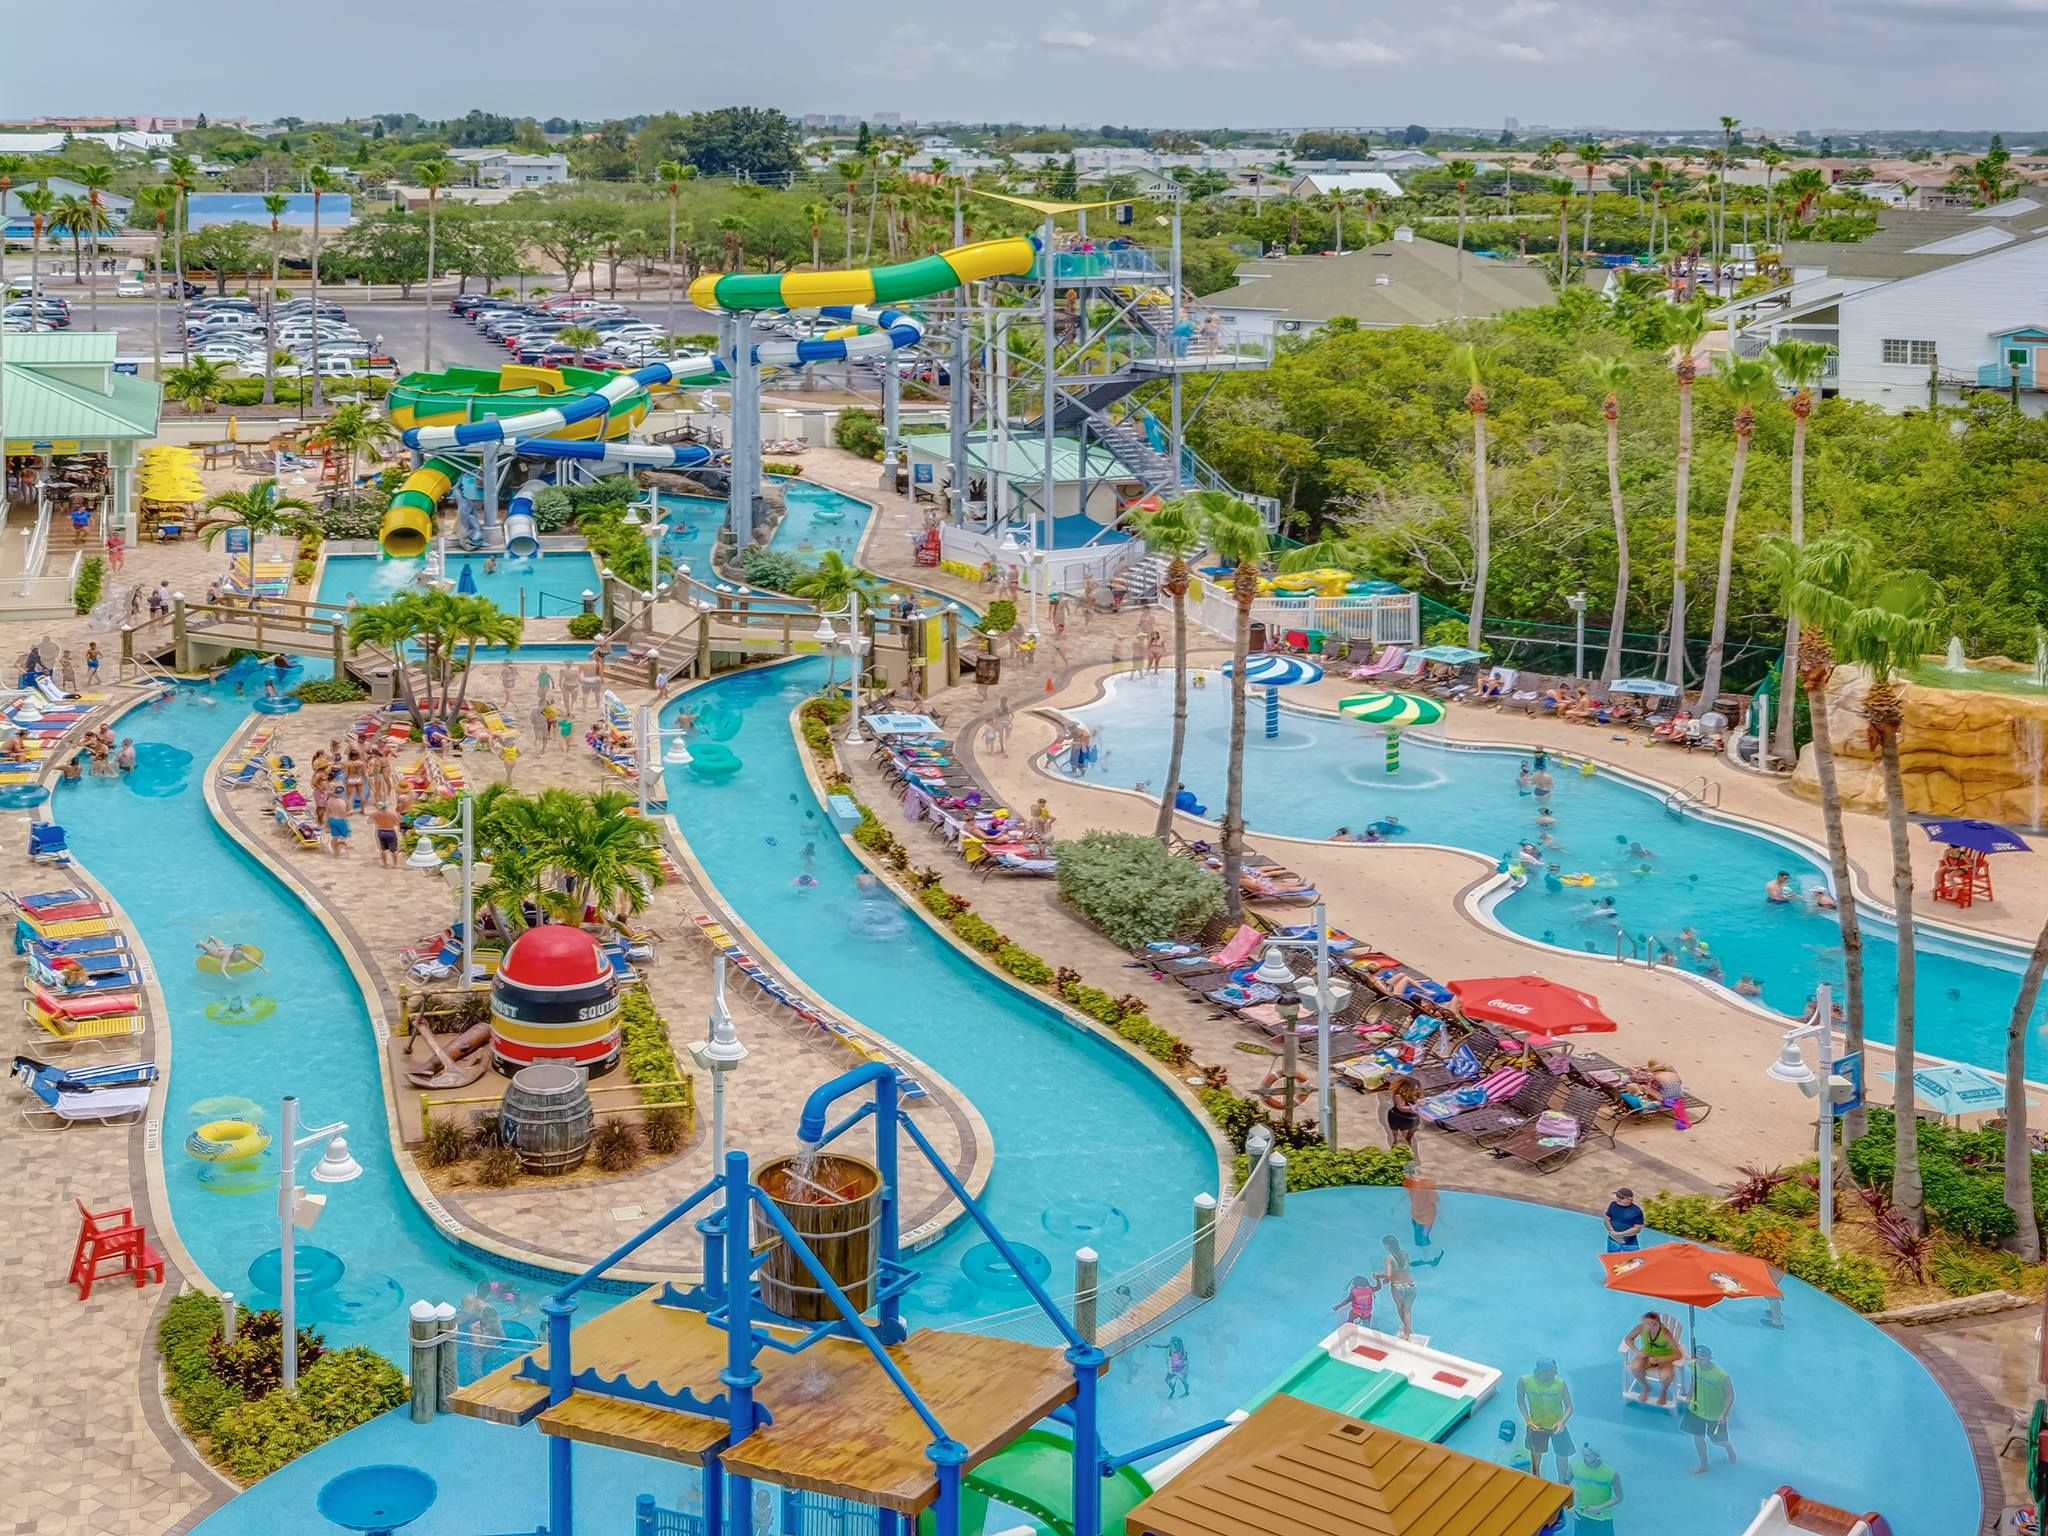 Water Park At Grove Shopping Center Wesley Chapel Community Website Water Park Wesley Chapel Florida Wesley Chapel